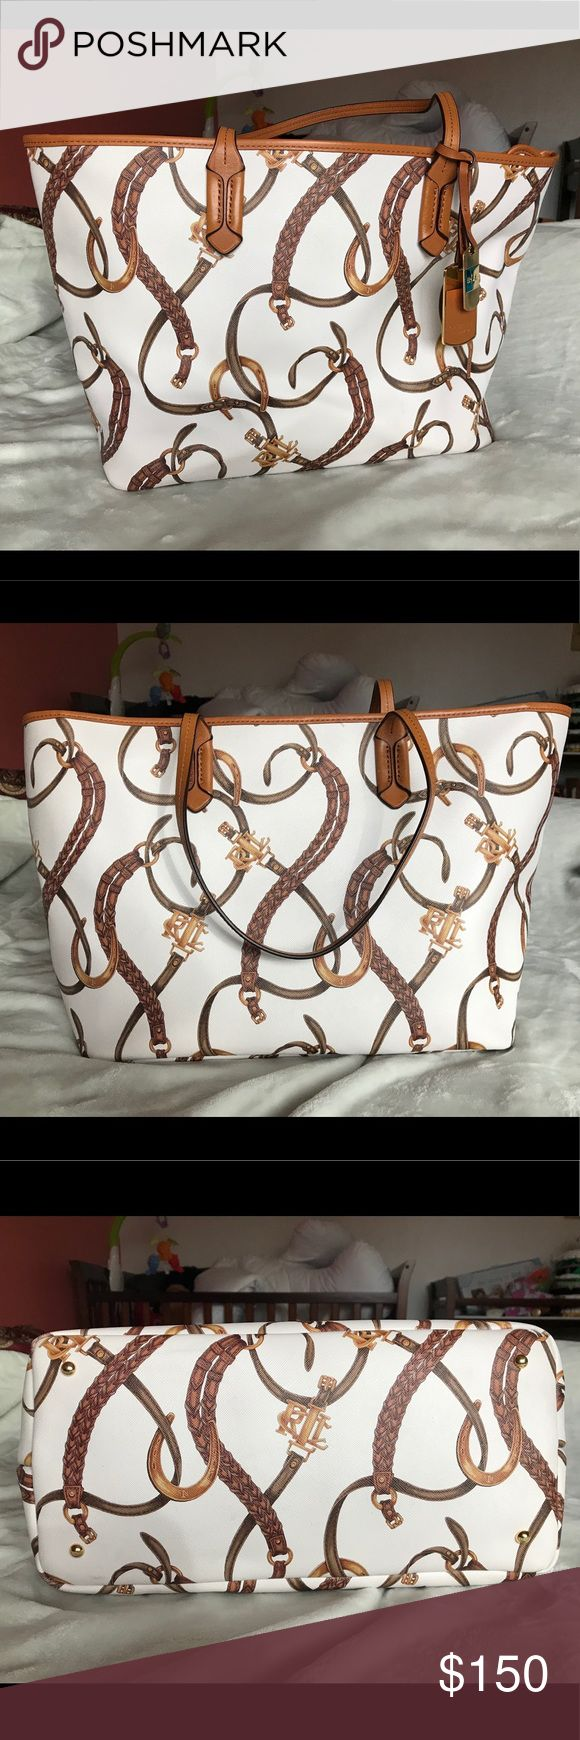 Ralph Lauren chain tote bag purse No flaws gently used. White with brown and gold details. Lauren Ralph Lauren Bags Totes